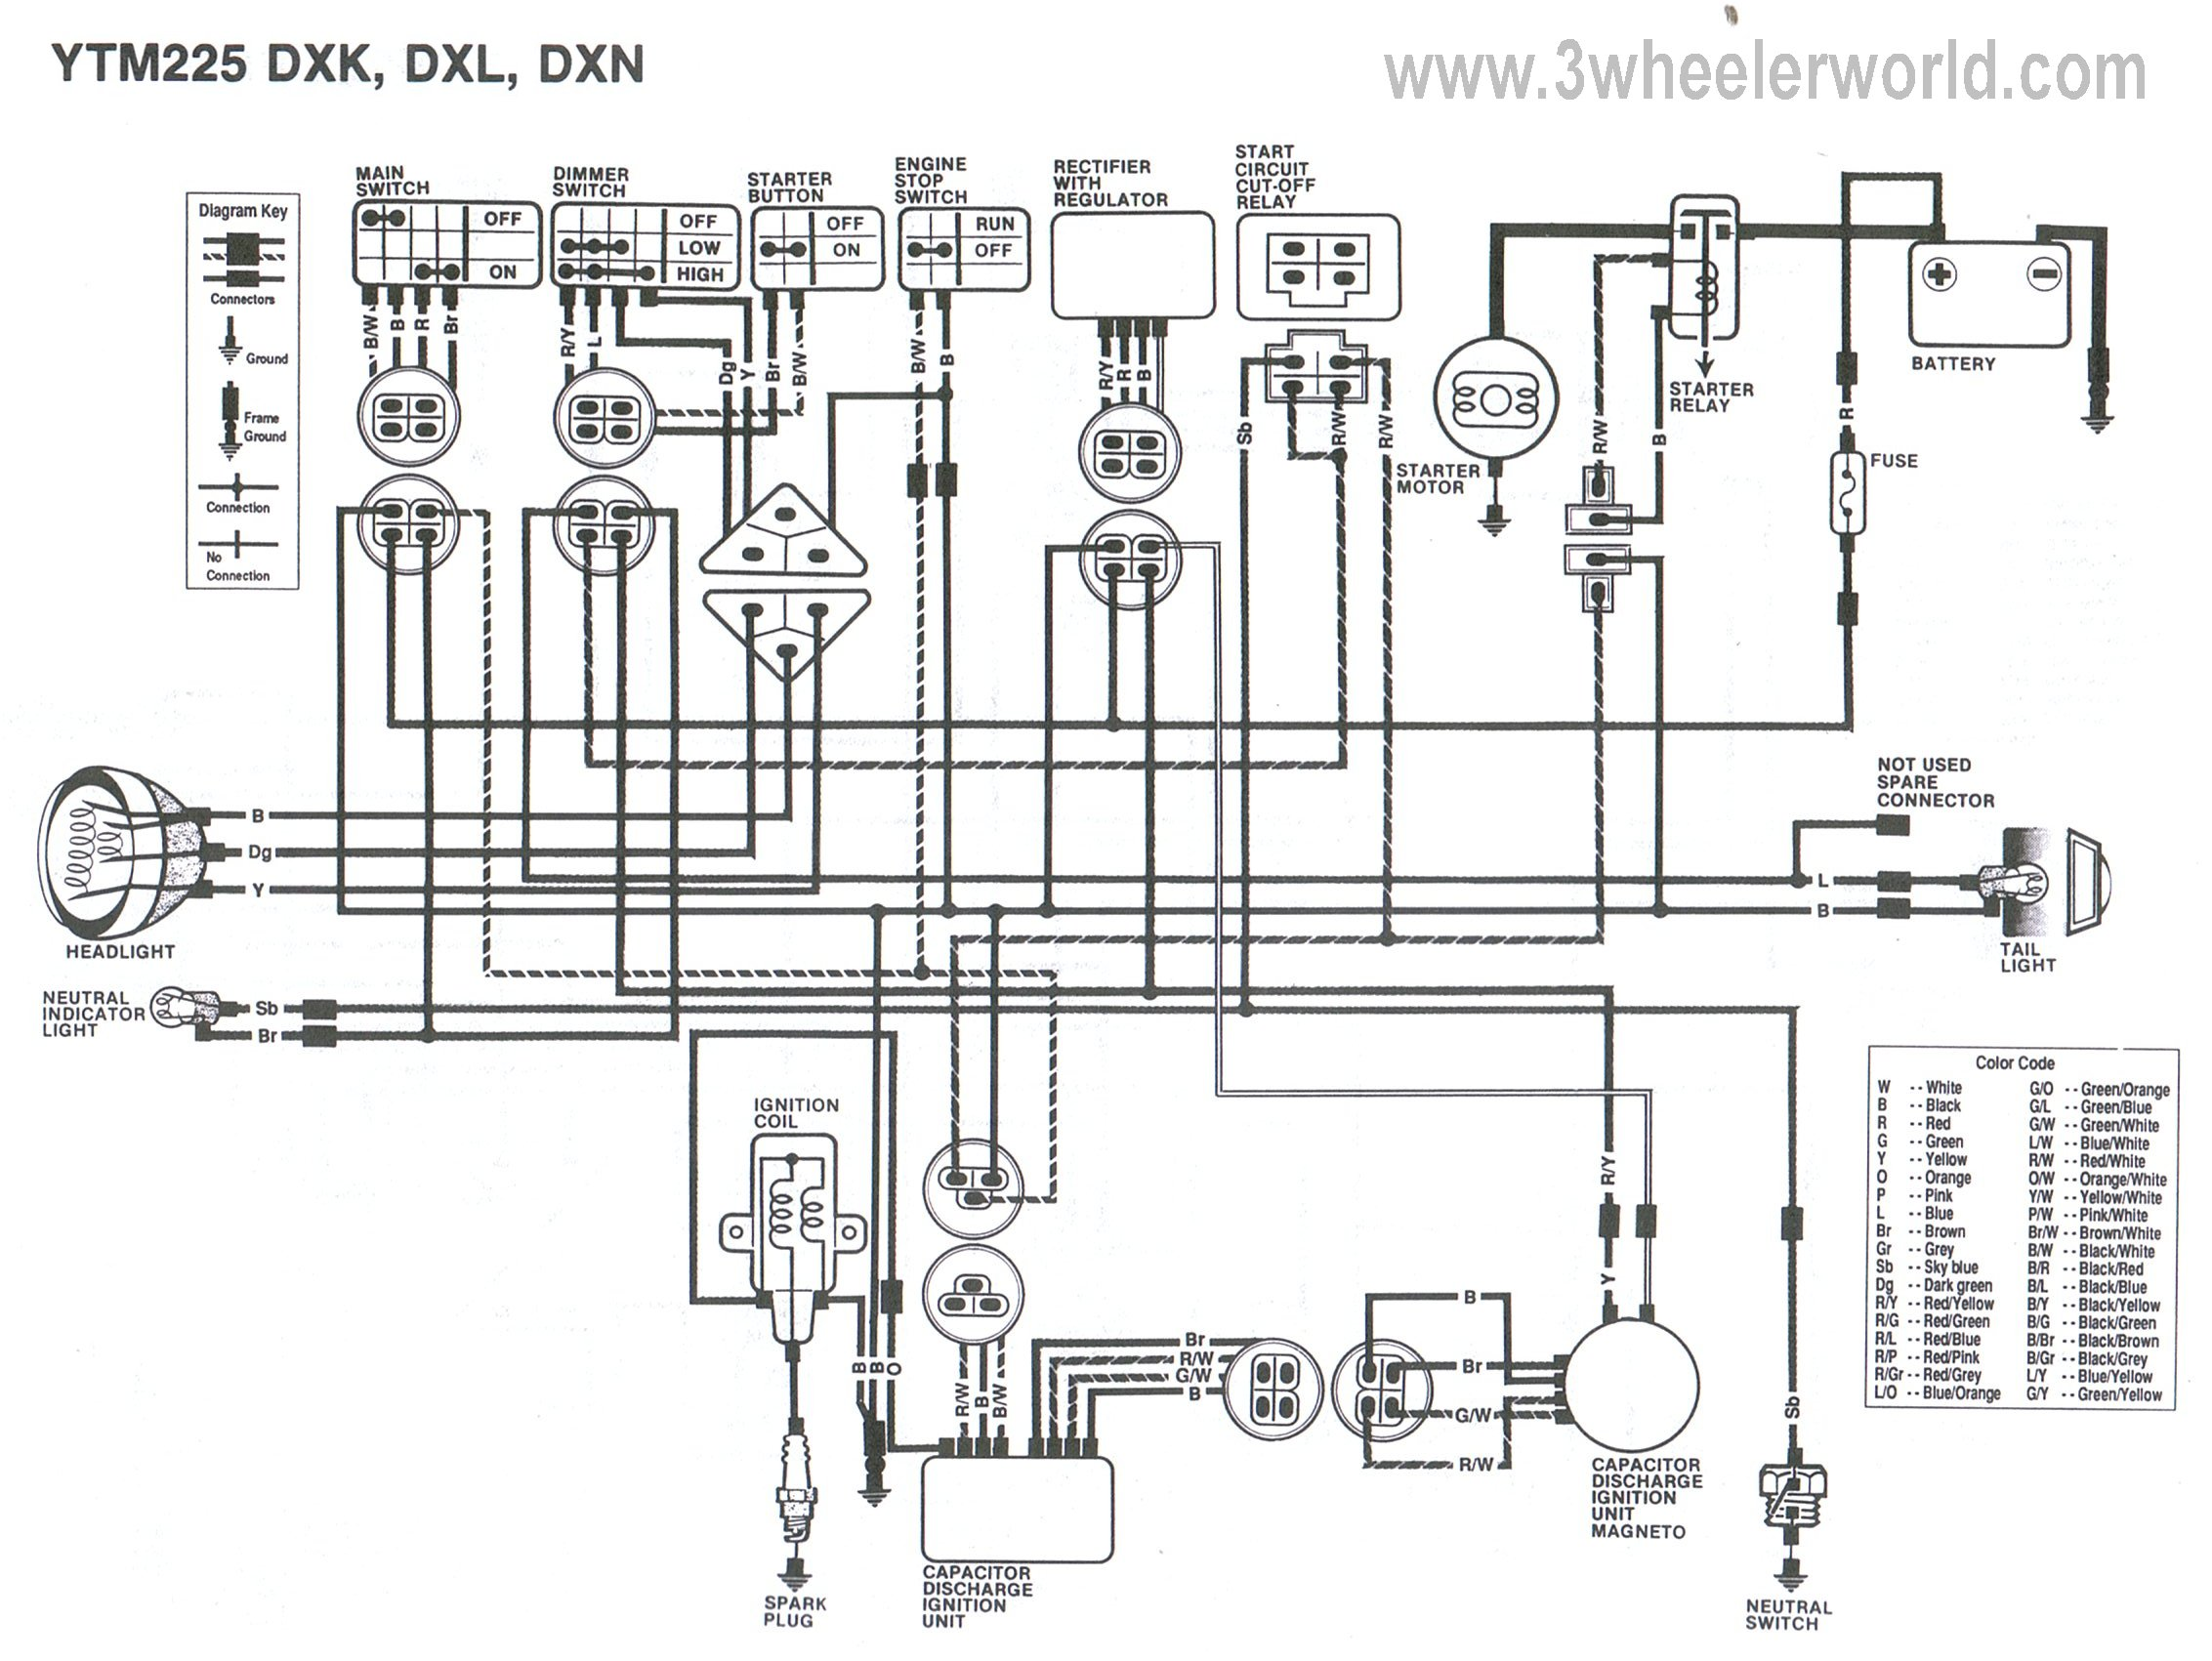 YTM225DXKDXLDXN 3 wheeler world tech help yamaha wiring diagrams  at bakdesigns.co